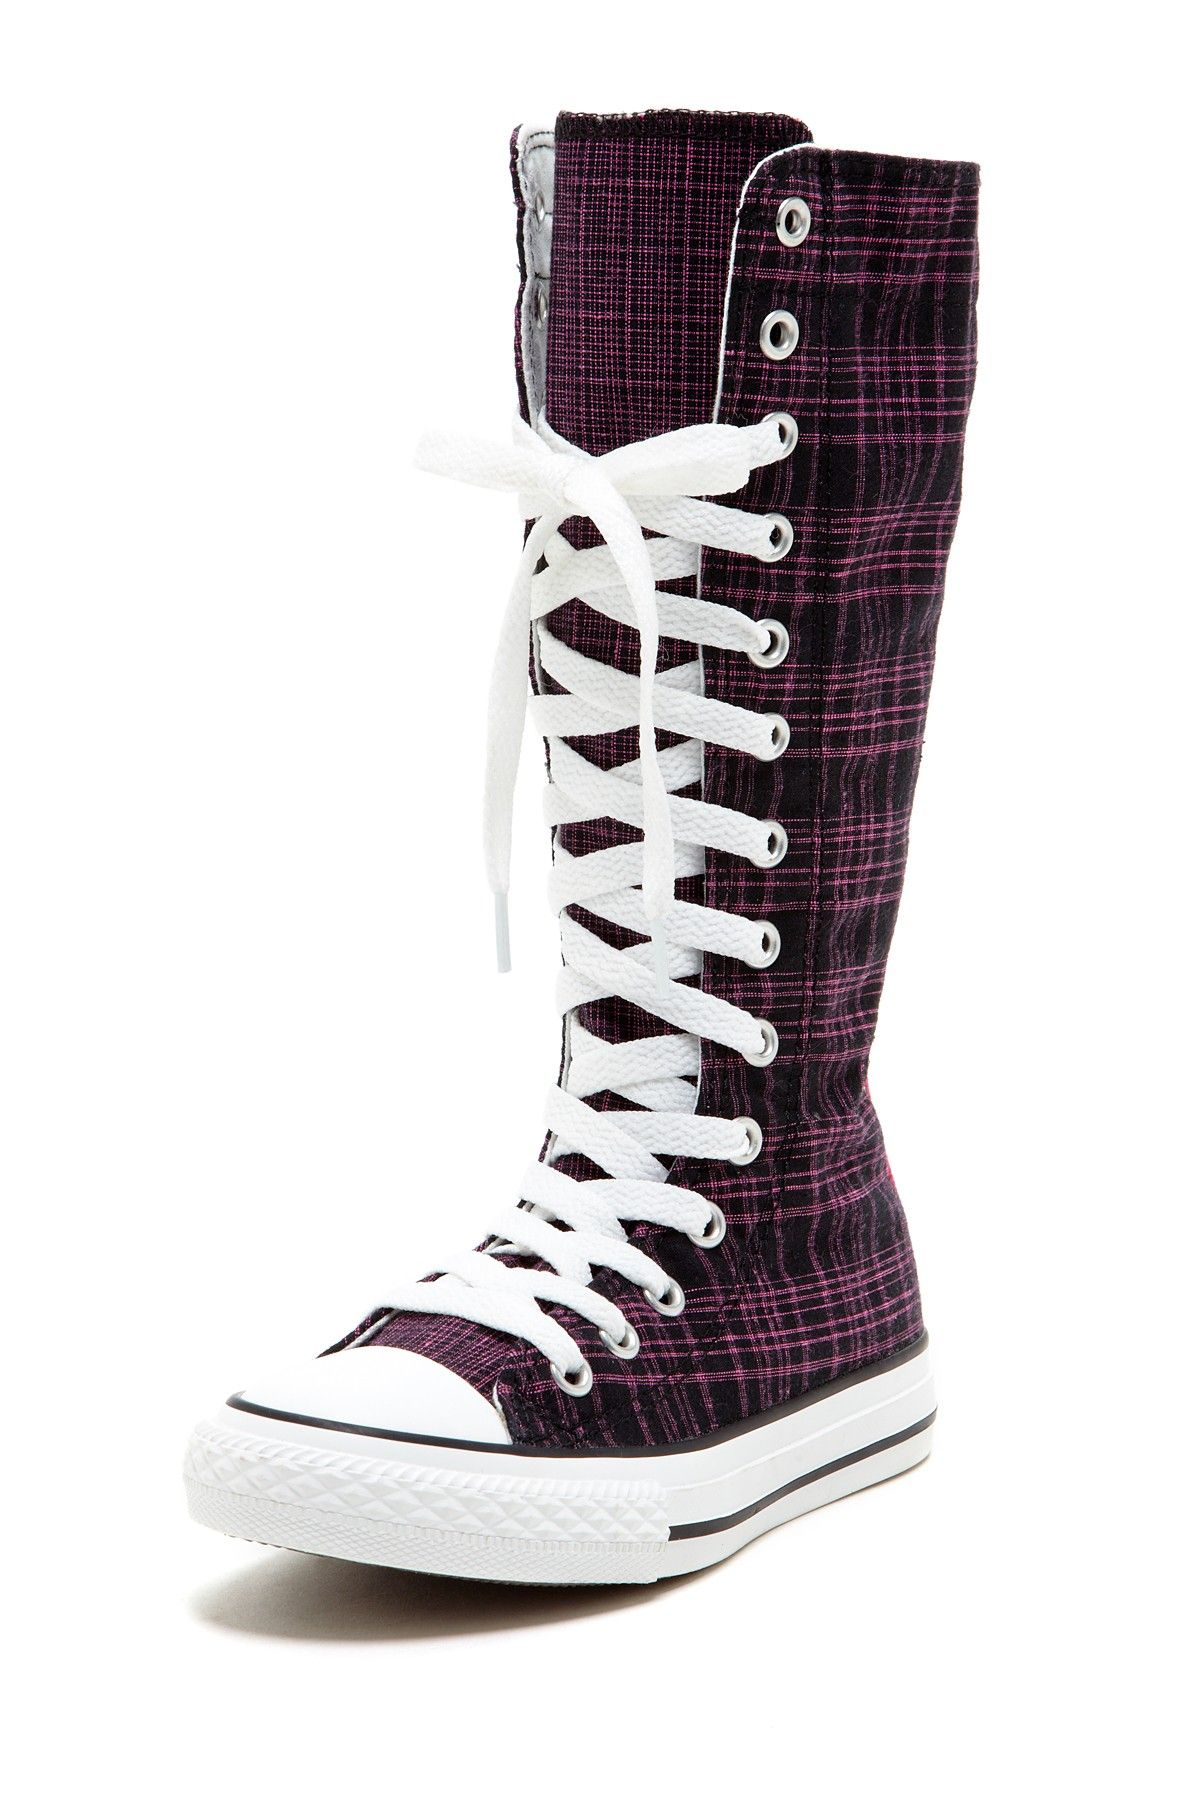 4c1f03681ee yup my dream pair of converse- well maybe knee high and a different color  but still these are cute too